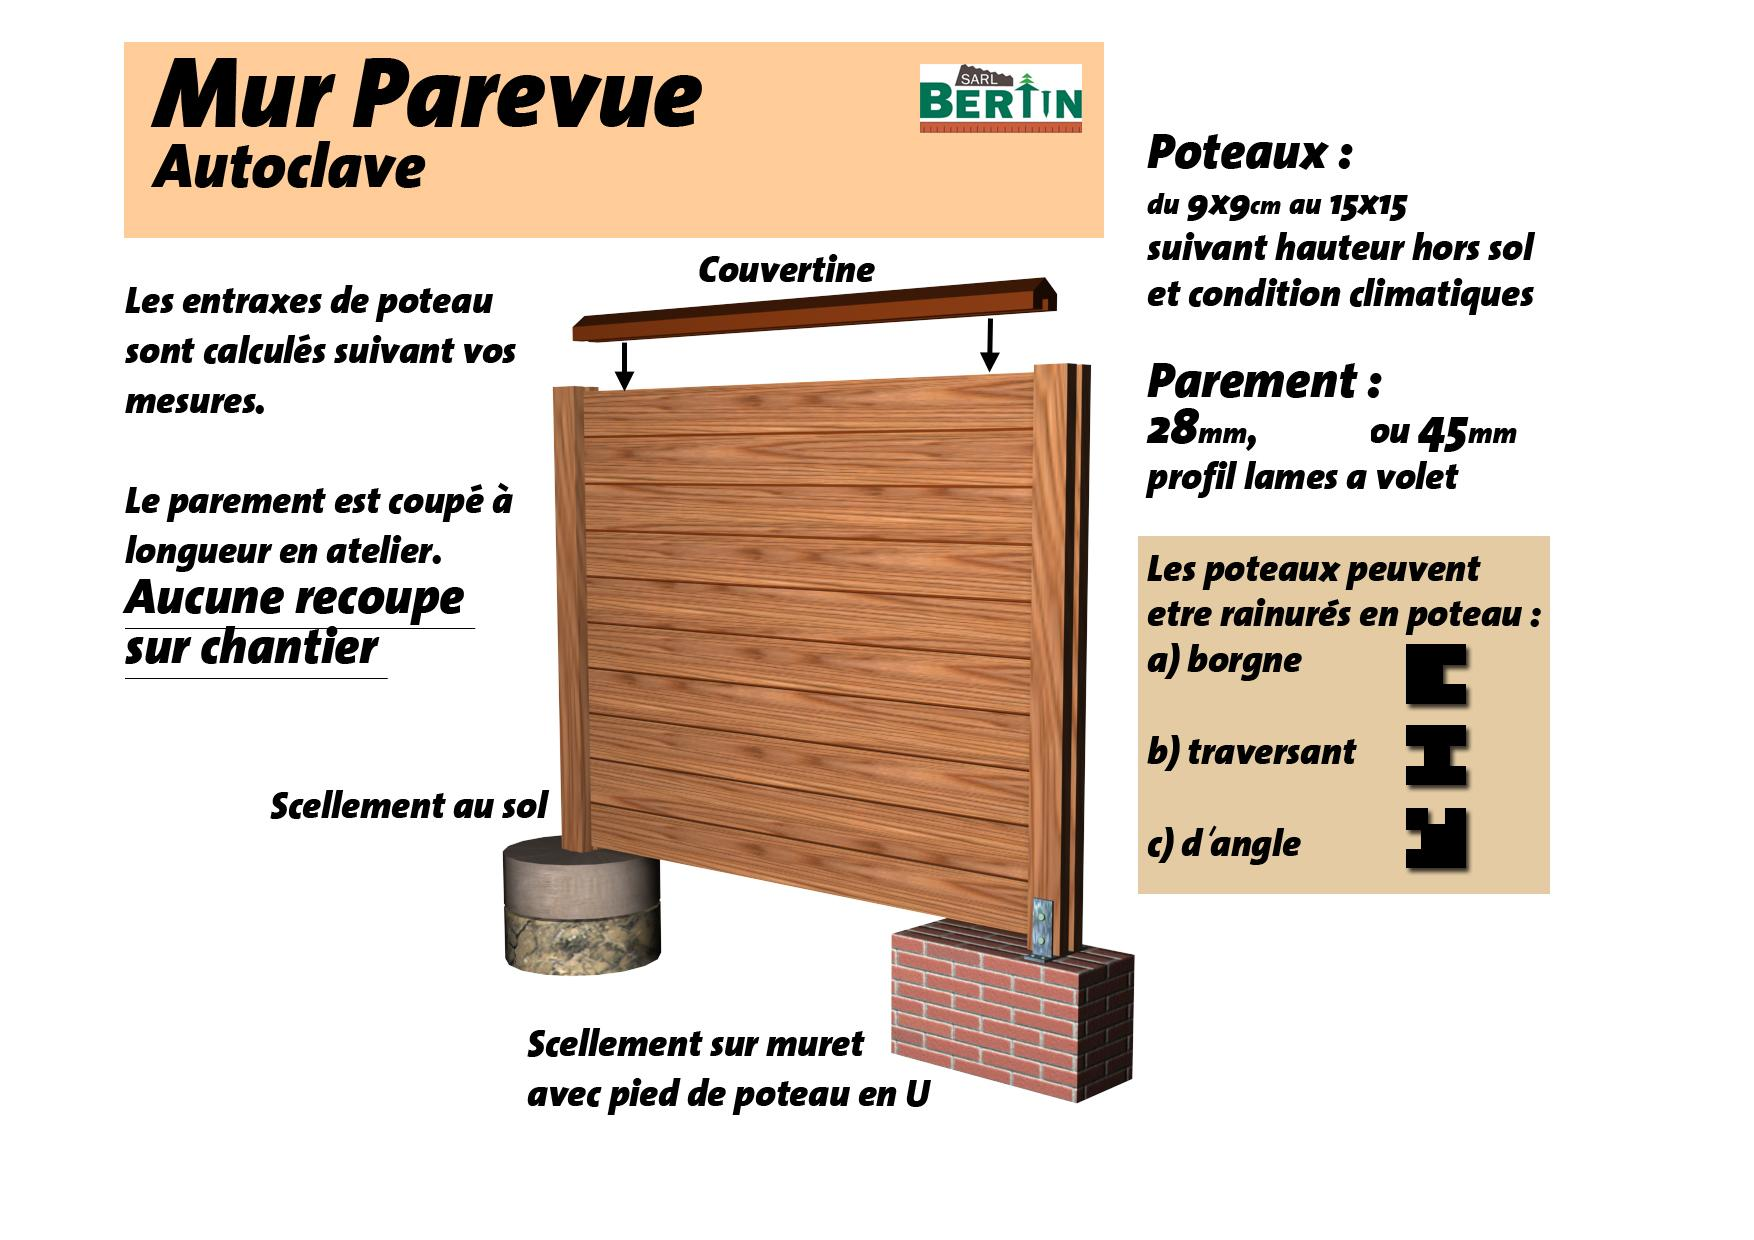 mur pare vue plein au m sur muret p 27mm poteau 10 10 menuiserie bertin. Black Bedroom Furniture Sets. Home Design Ideas